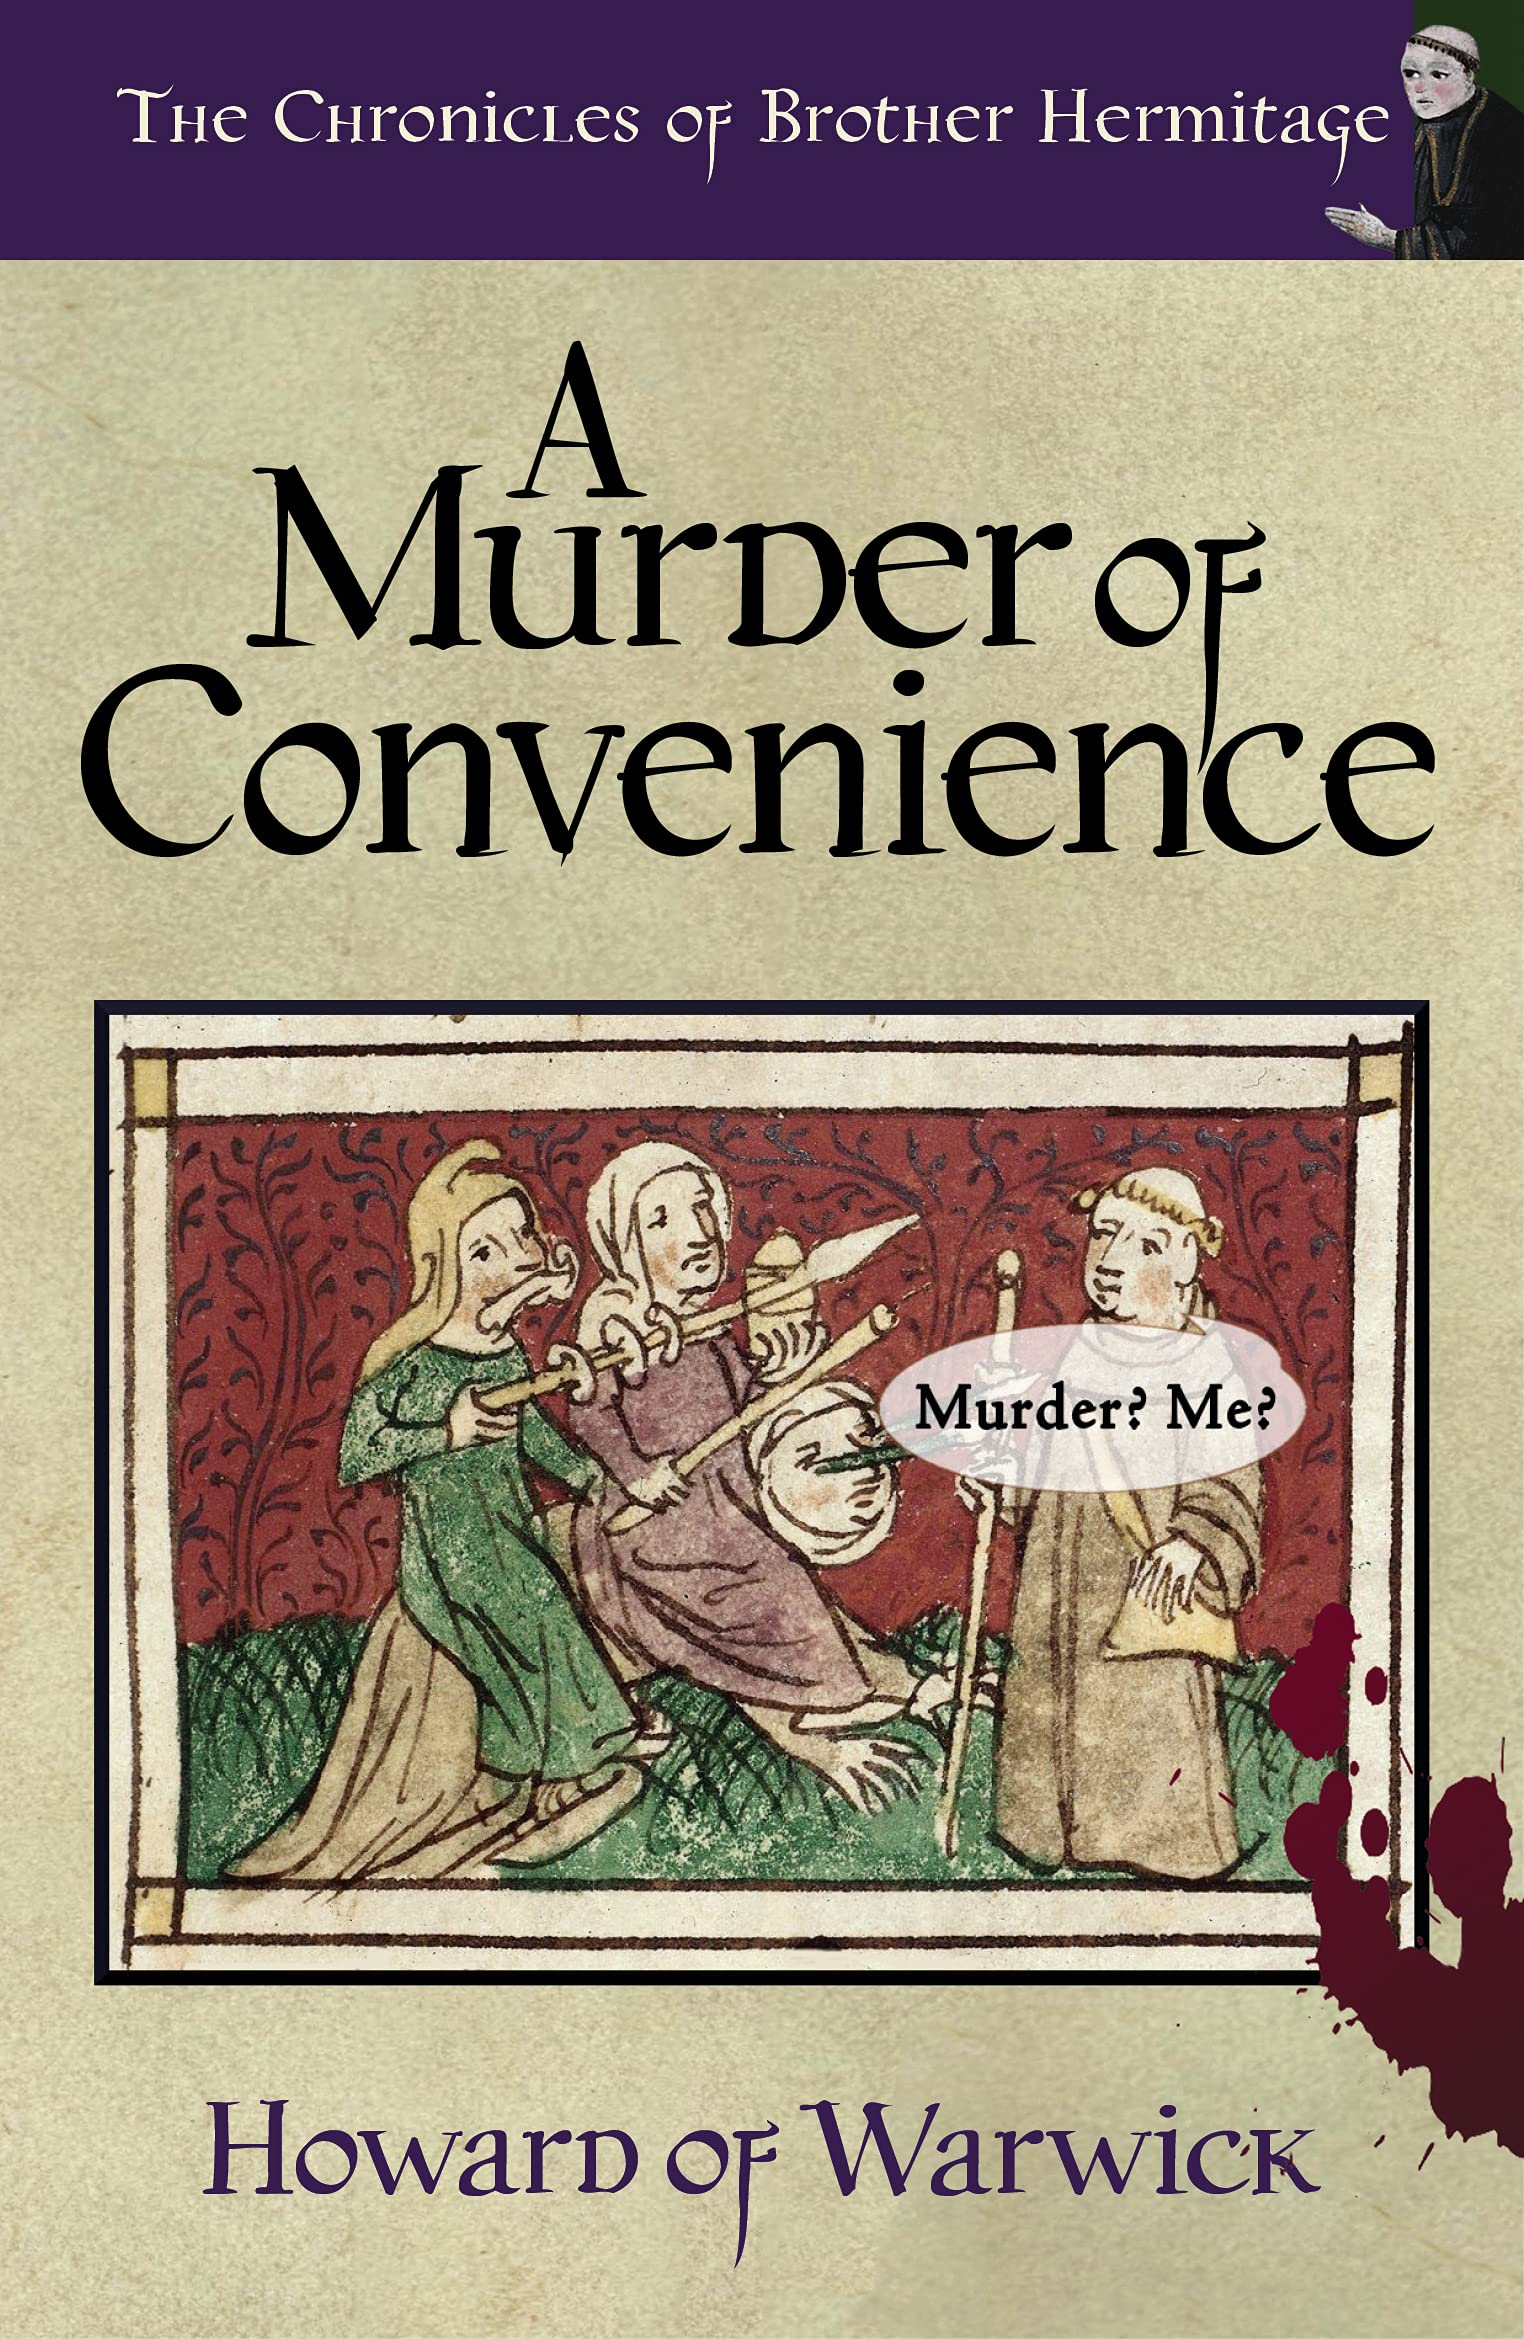 A Murder of Convenience (The Chronicles of Brother Hermitage Book 22)